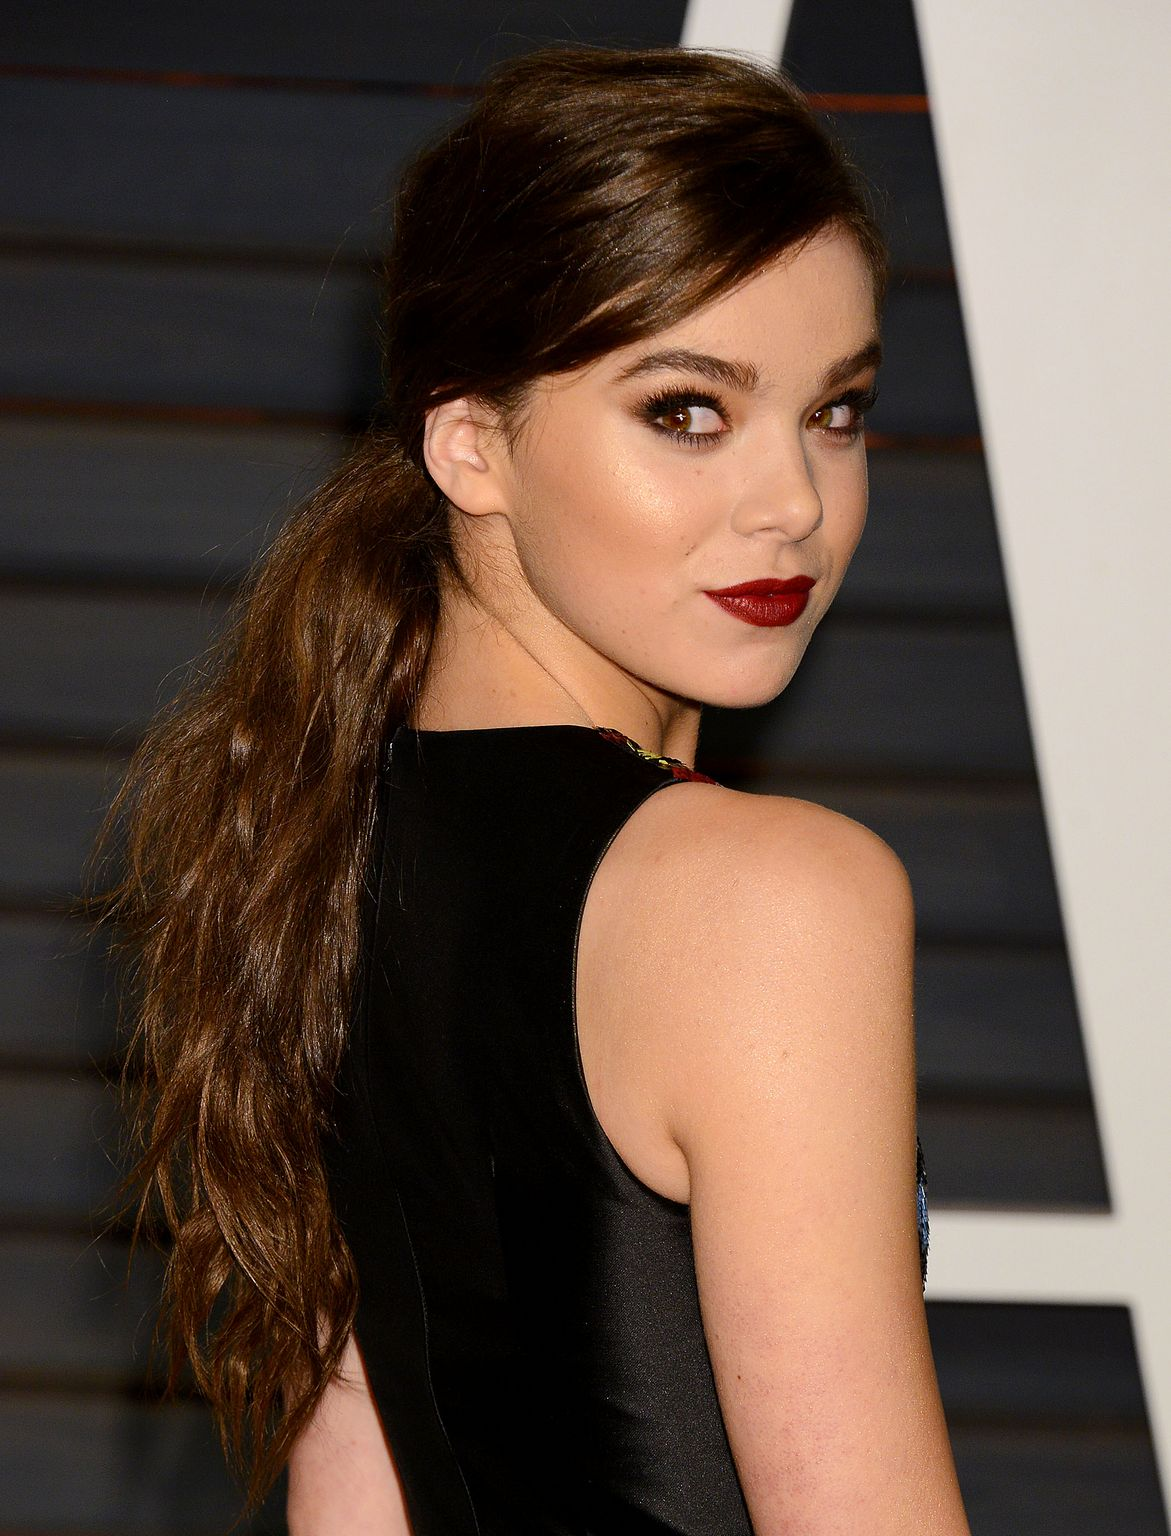 Full Hd Cars Wallpapers For Android Hailee Steinfeld Hairstyle Full Hd Pictures